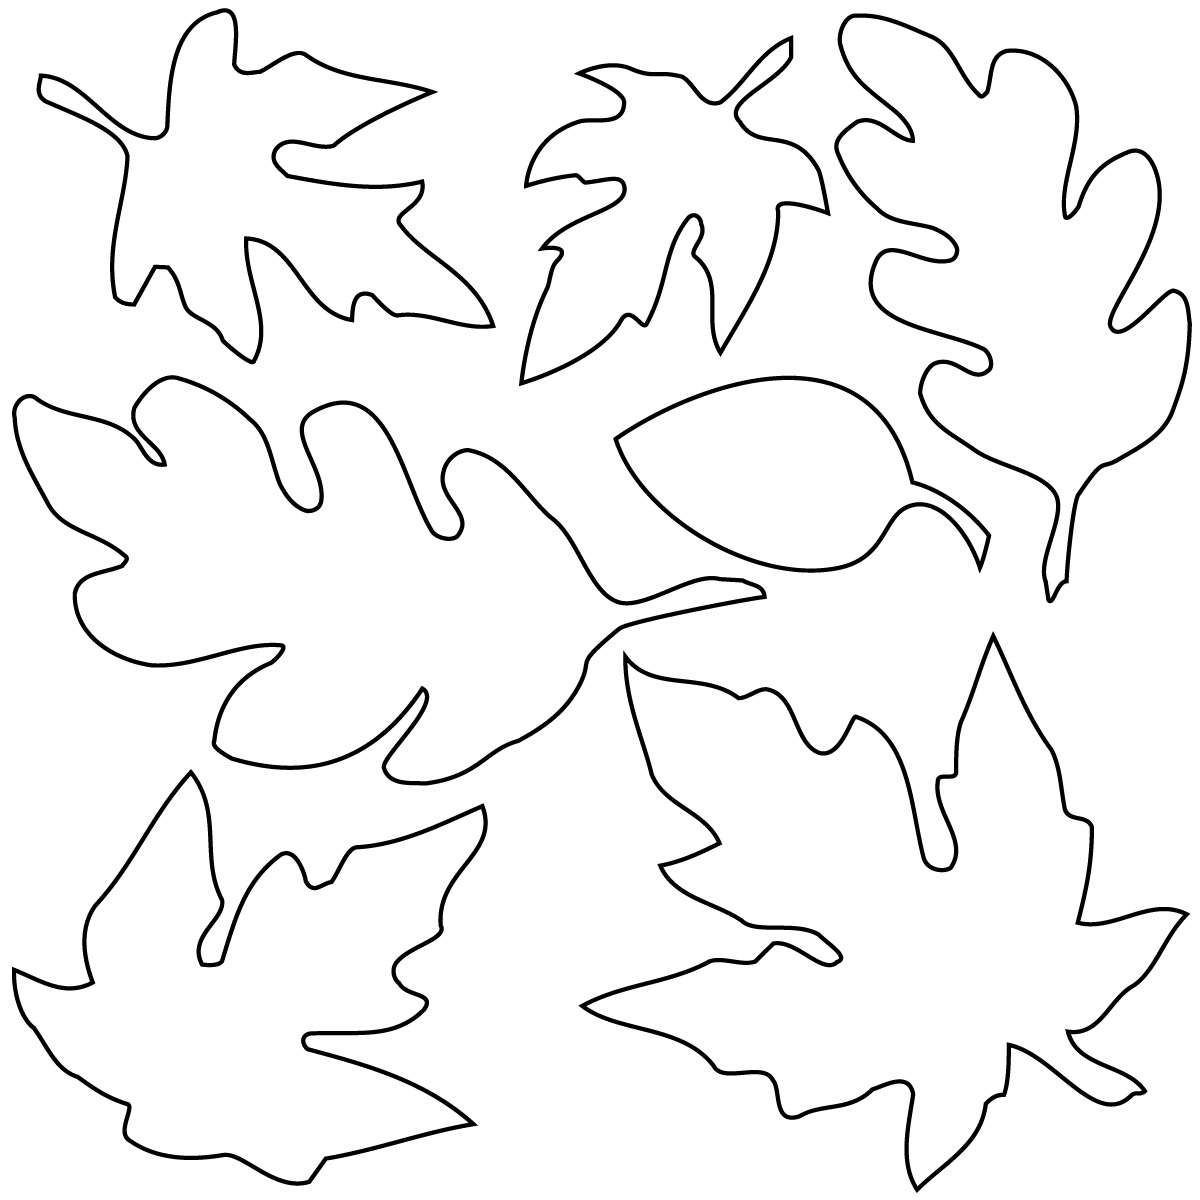 Co coloring page for leaves - Autumn Leaves Clip Art Black And White T O N